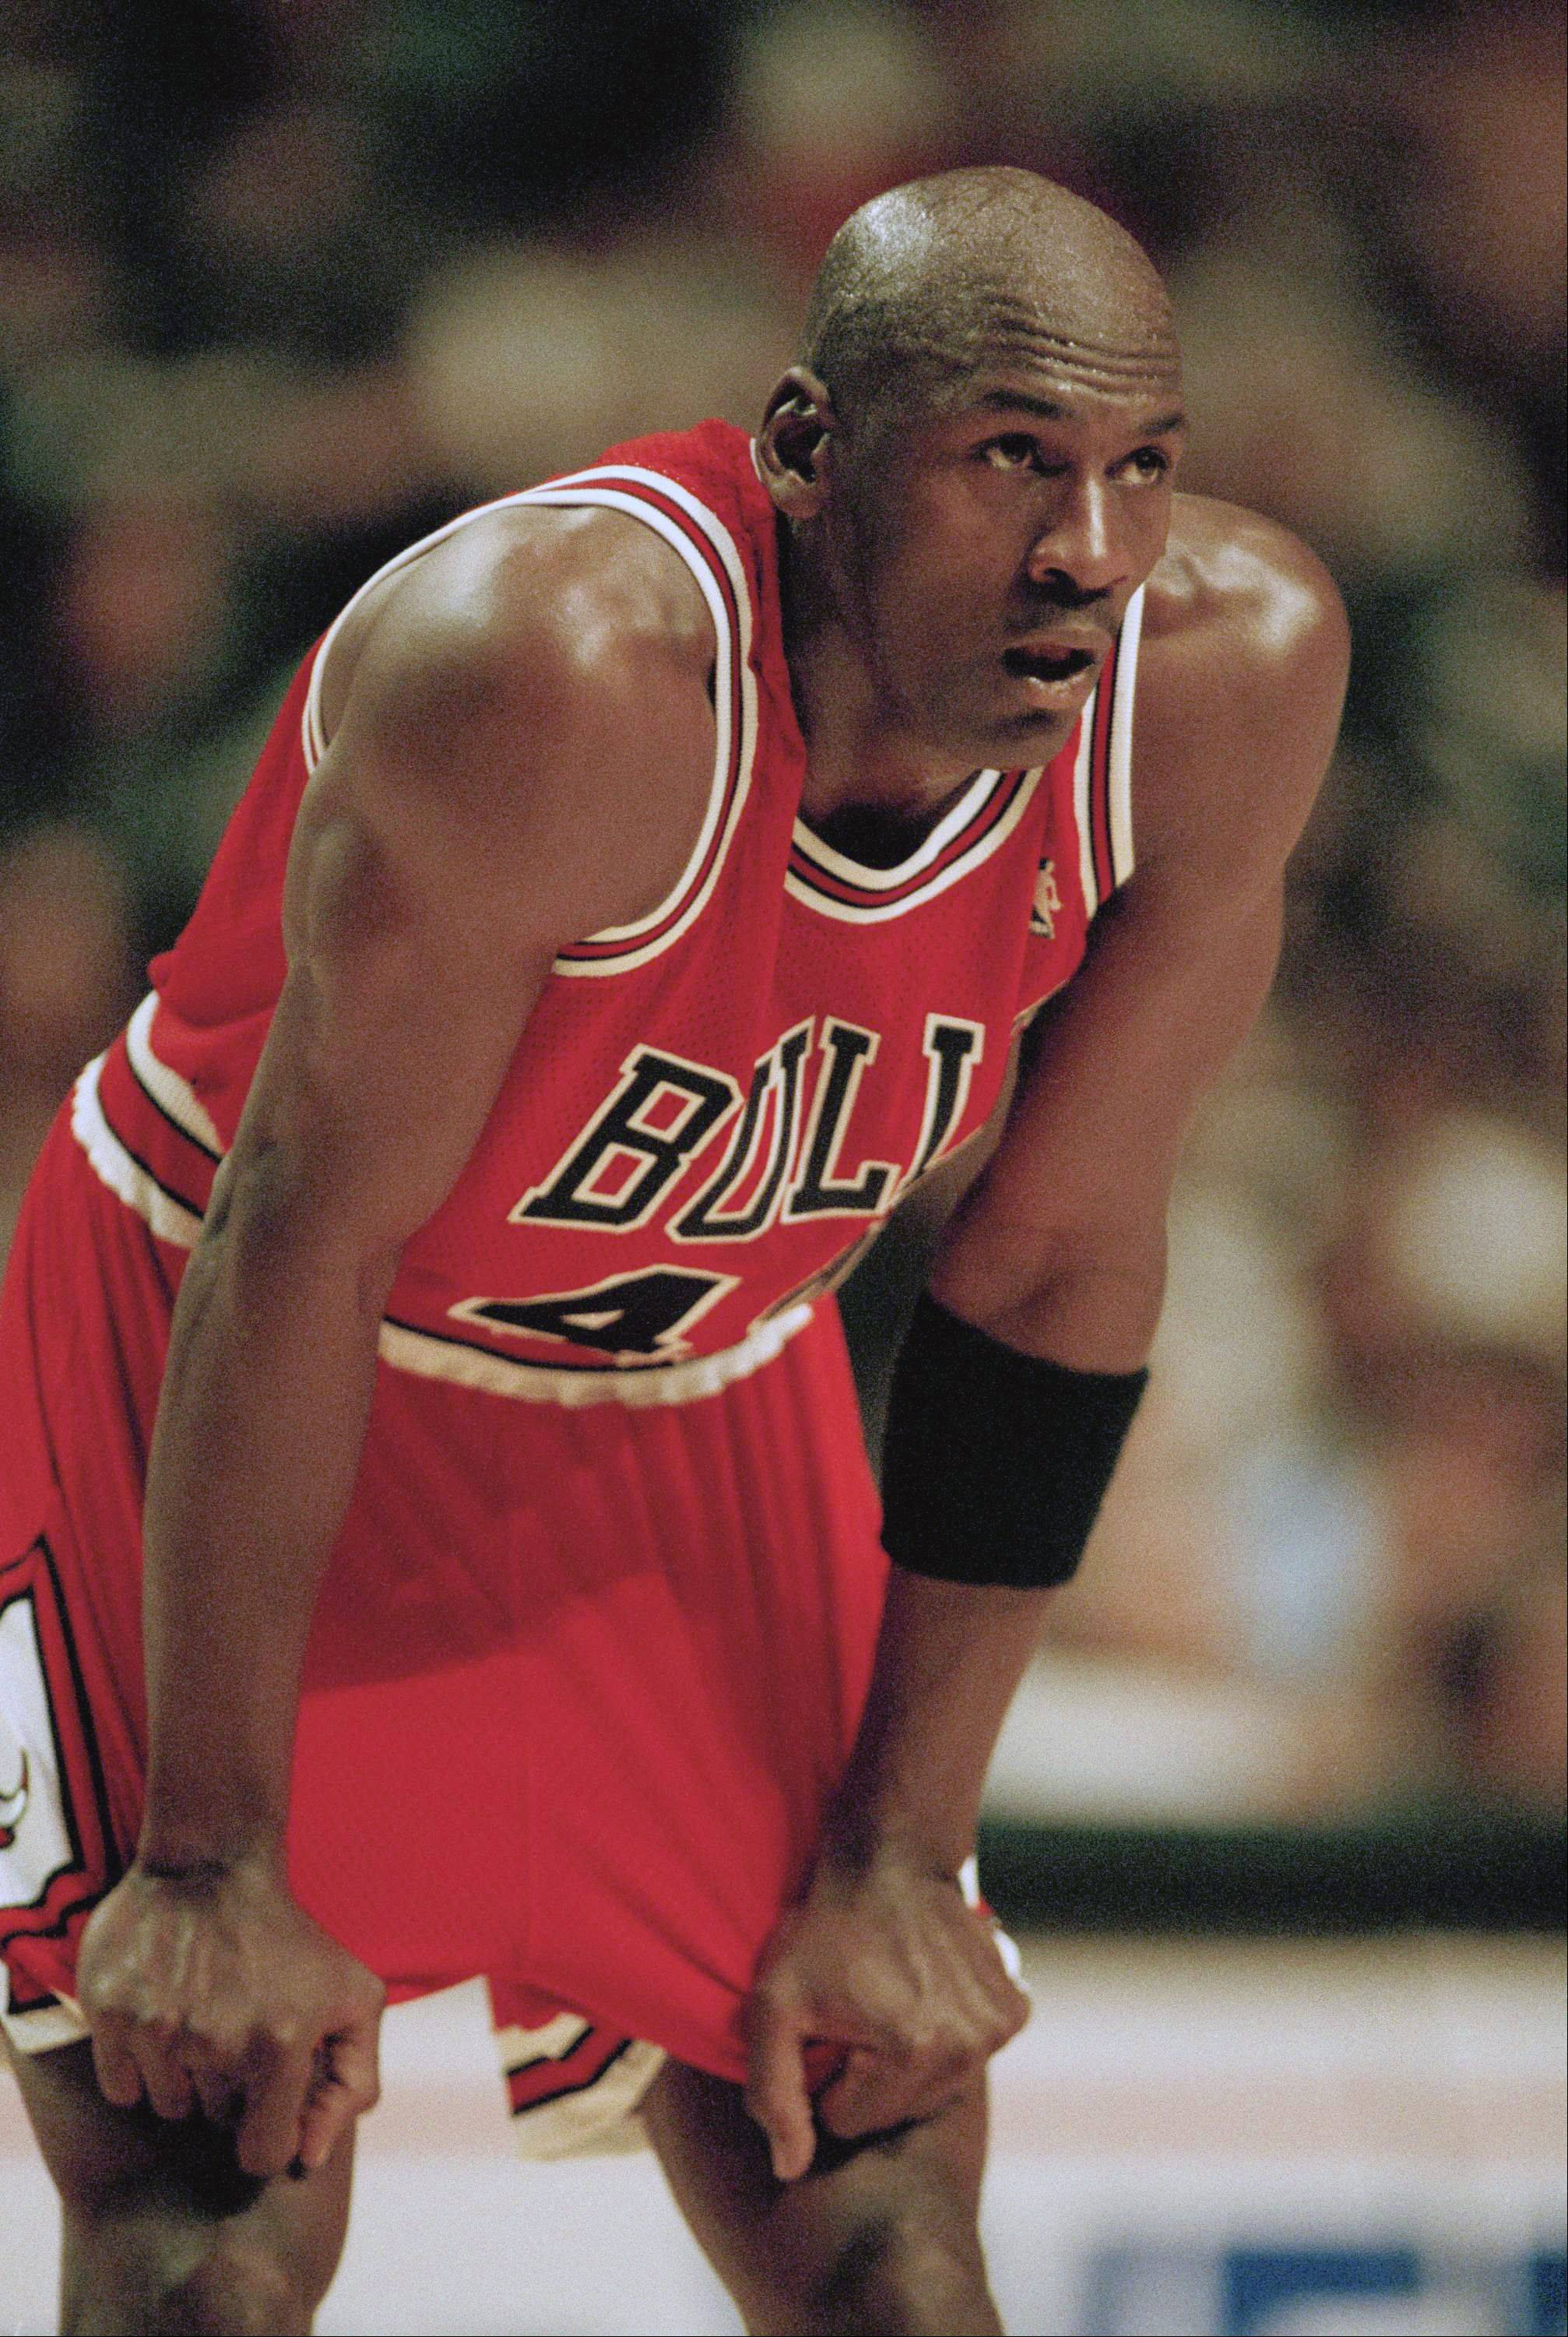 Chicago Bulls Guard Michael Jordan catches his breath during the second quarter of his comeback game against the Indiana Pacers, Sunday, March 19, 1995, Indianapolis, In. Jordan played 43 minutes in the 103-96 overtime loss to the Pacers.